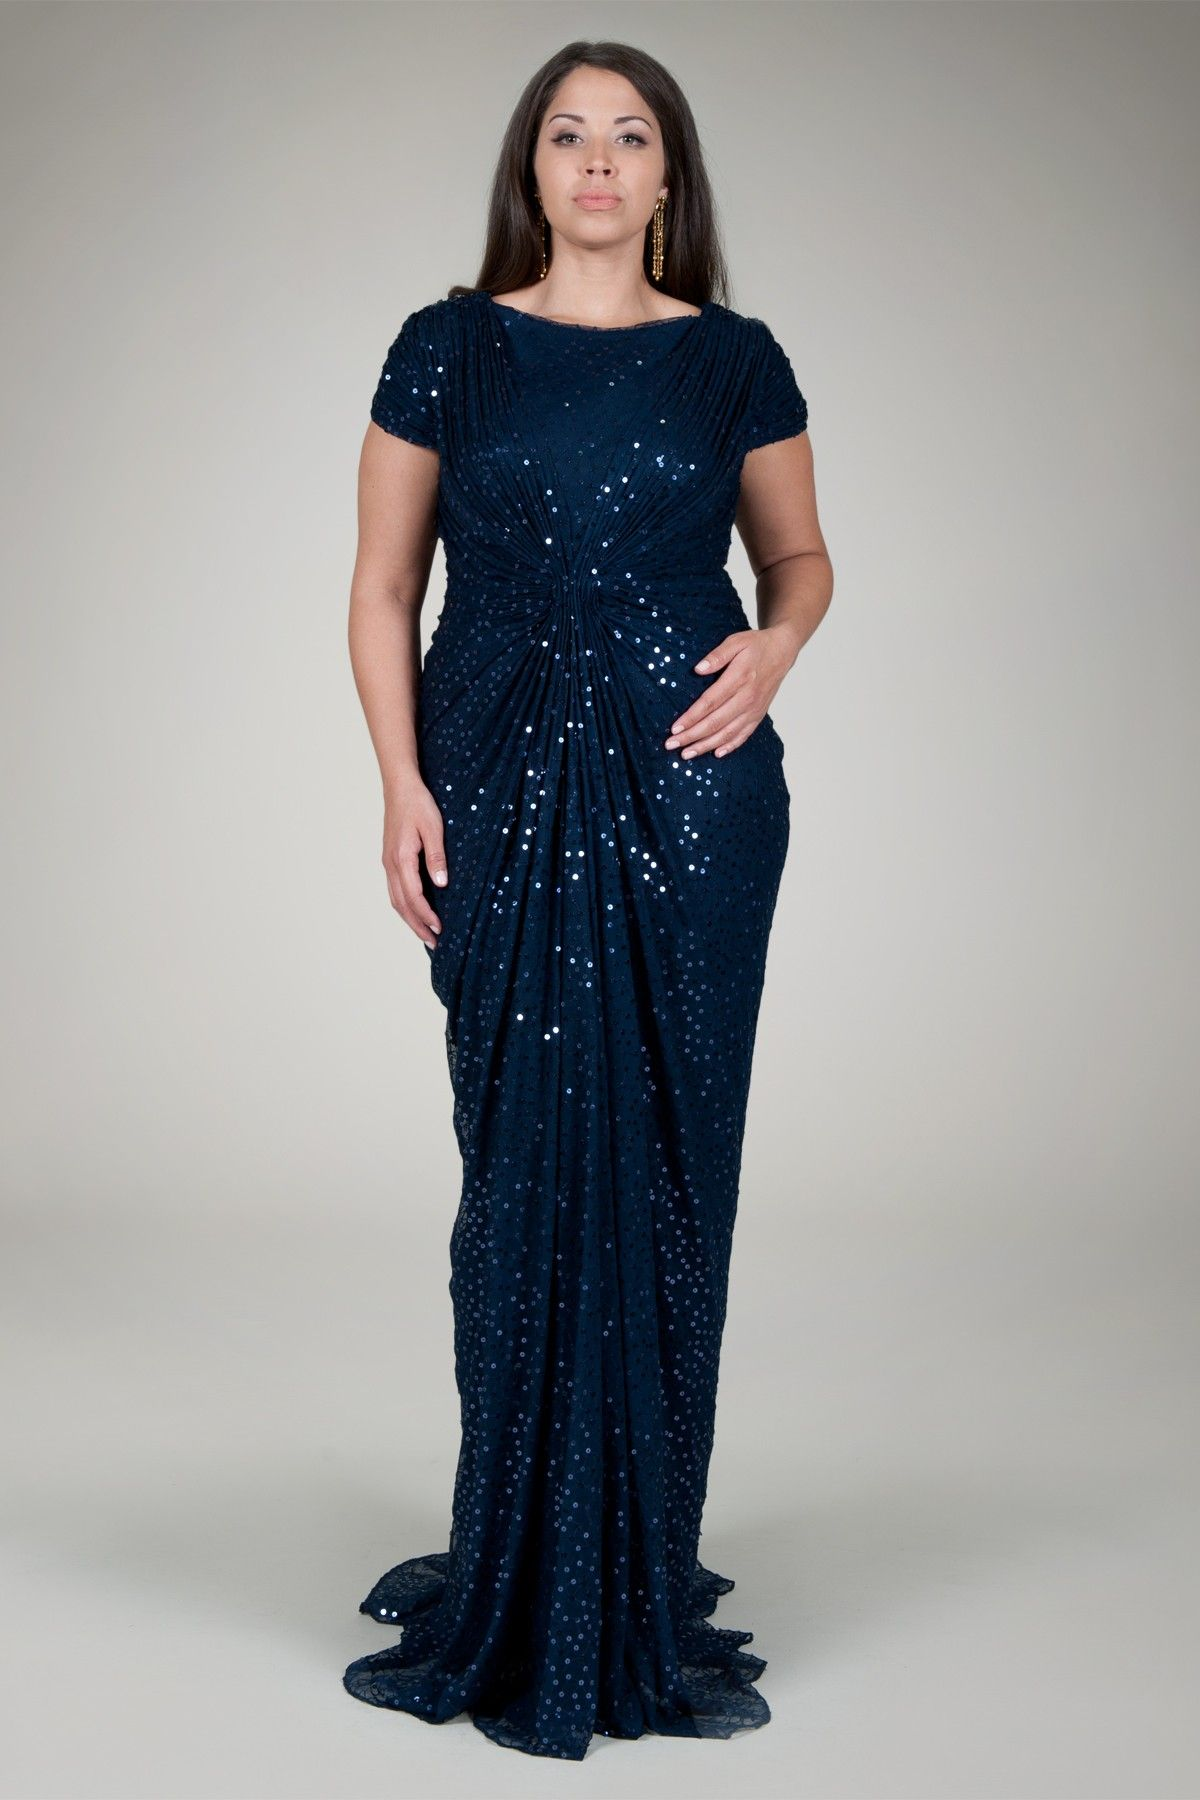 64970614b82 Red Carpet Sequin Gown in Navy - Plus Size Evening Shop